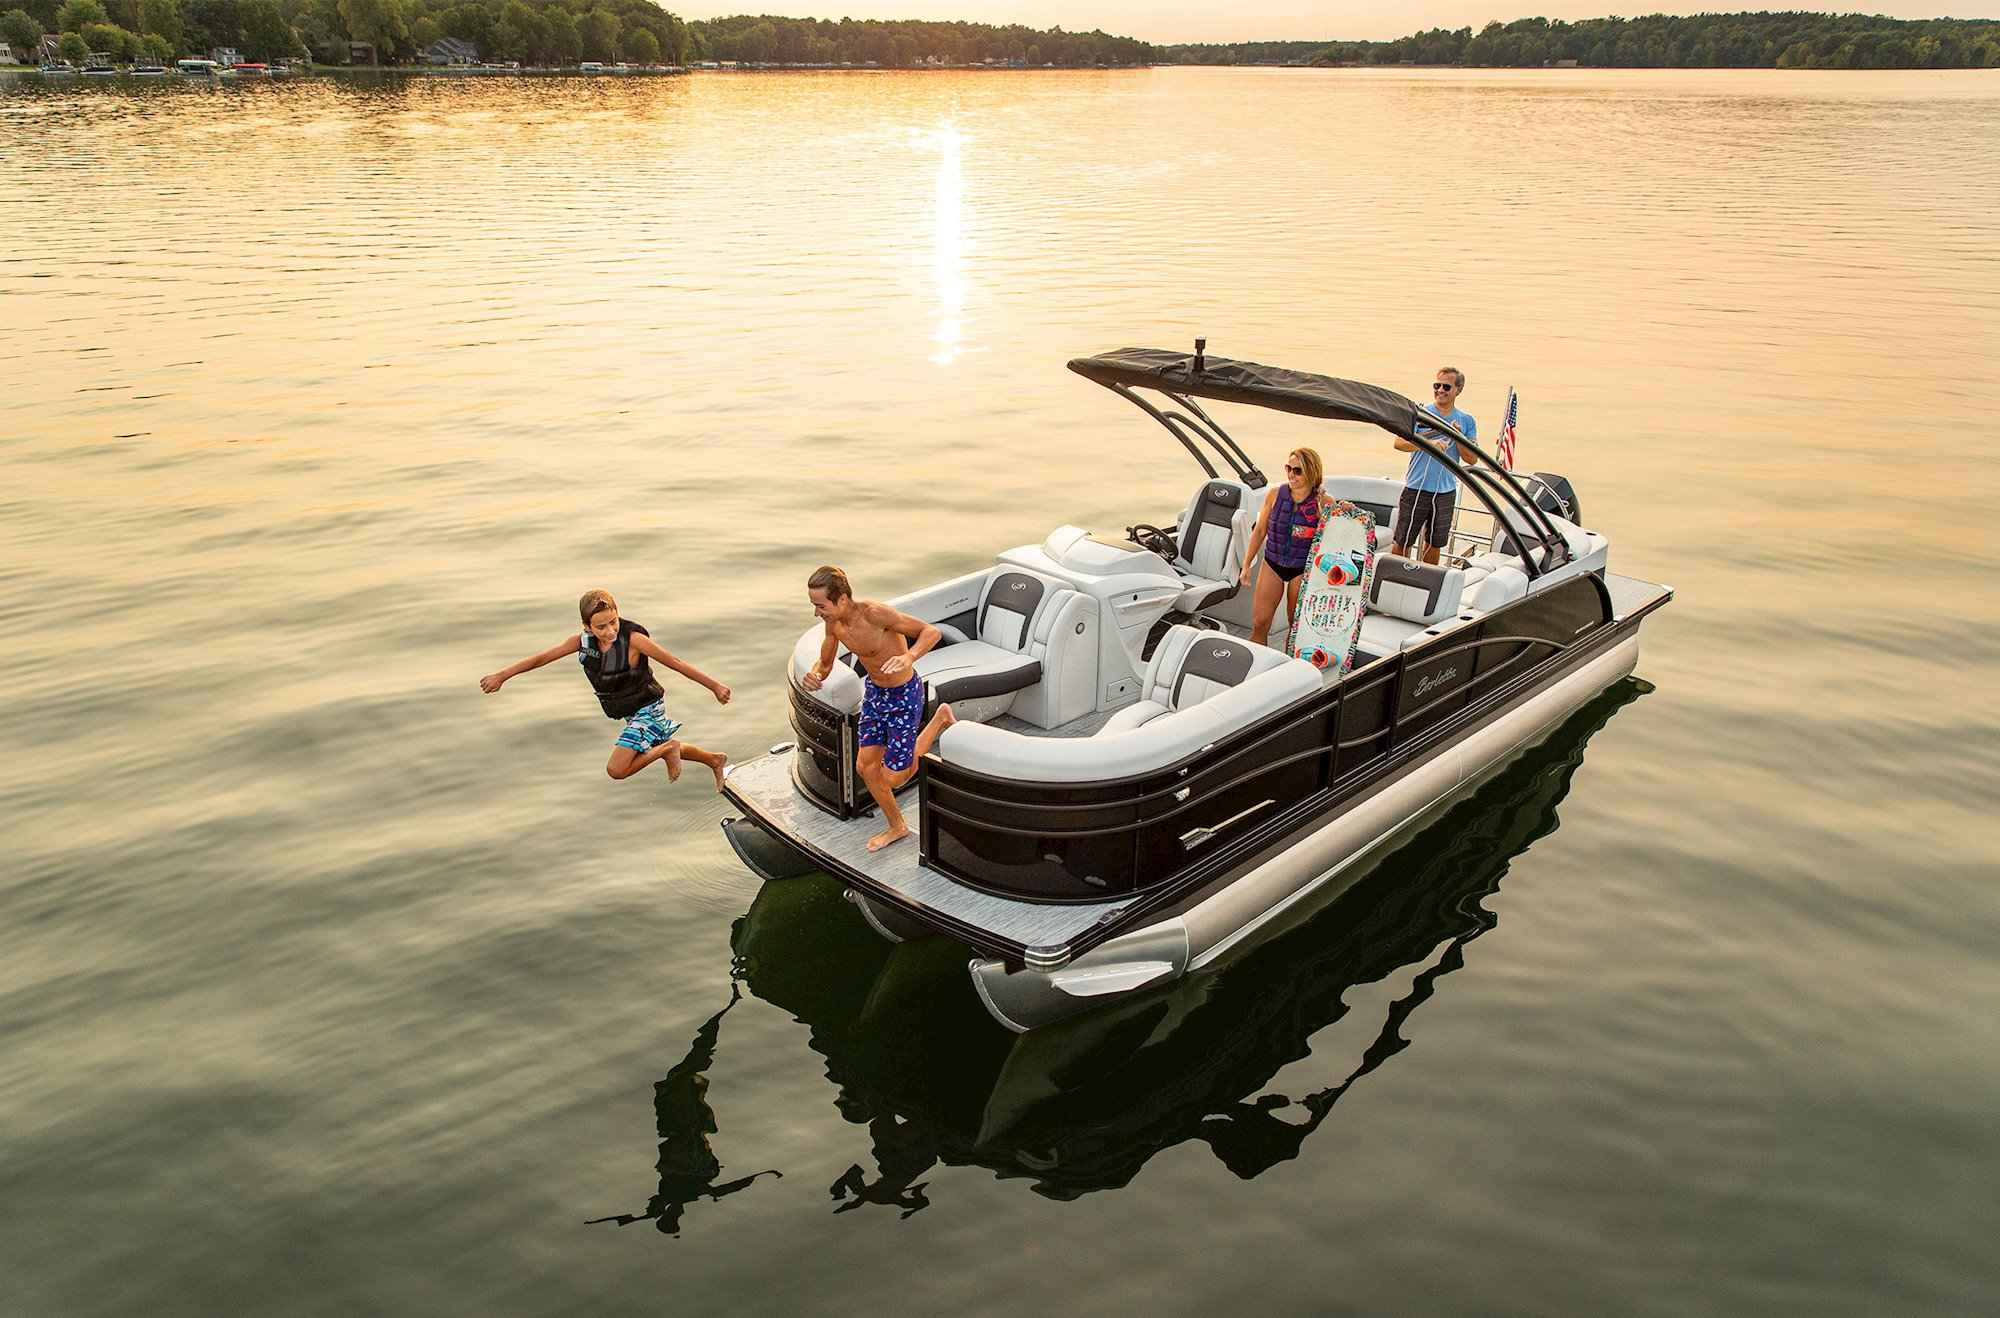 Boating Safety Tips from Sheltered Cove Marina